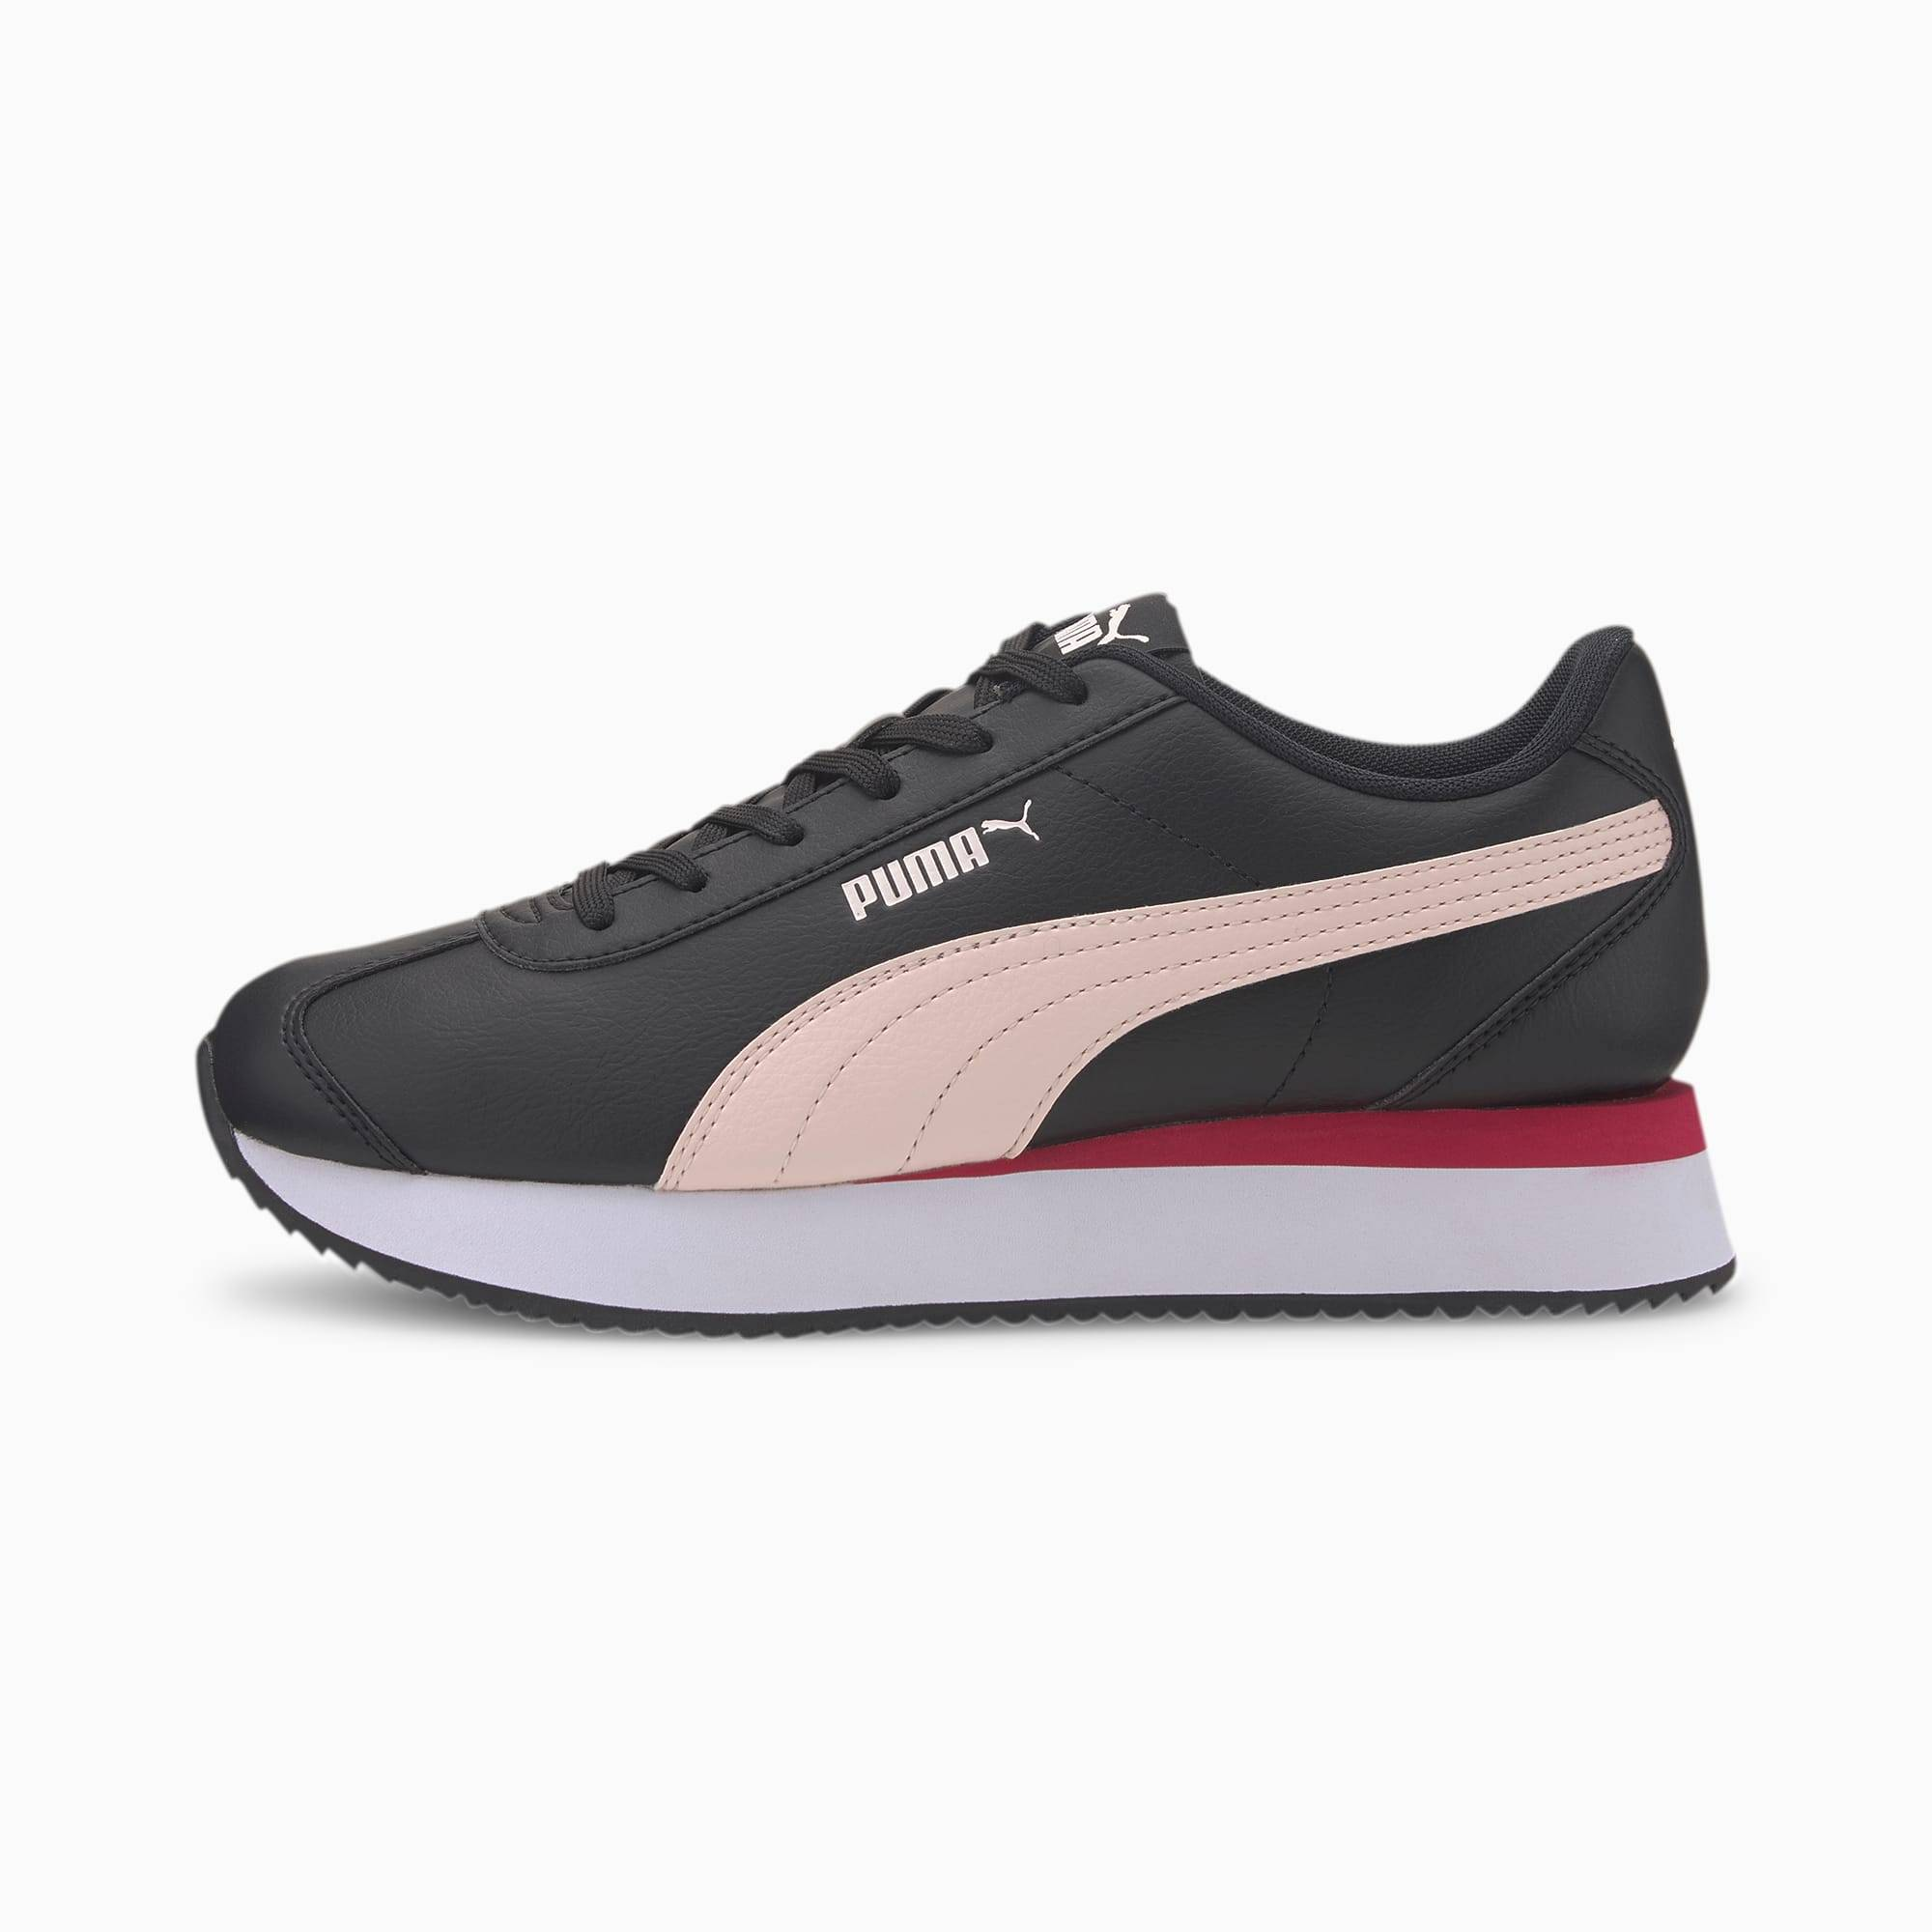 PUMA Chaussure Basket Turino Stacked pour Femme, Taille 35.5, Chaussures